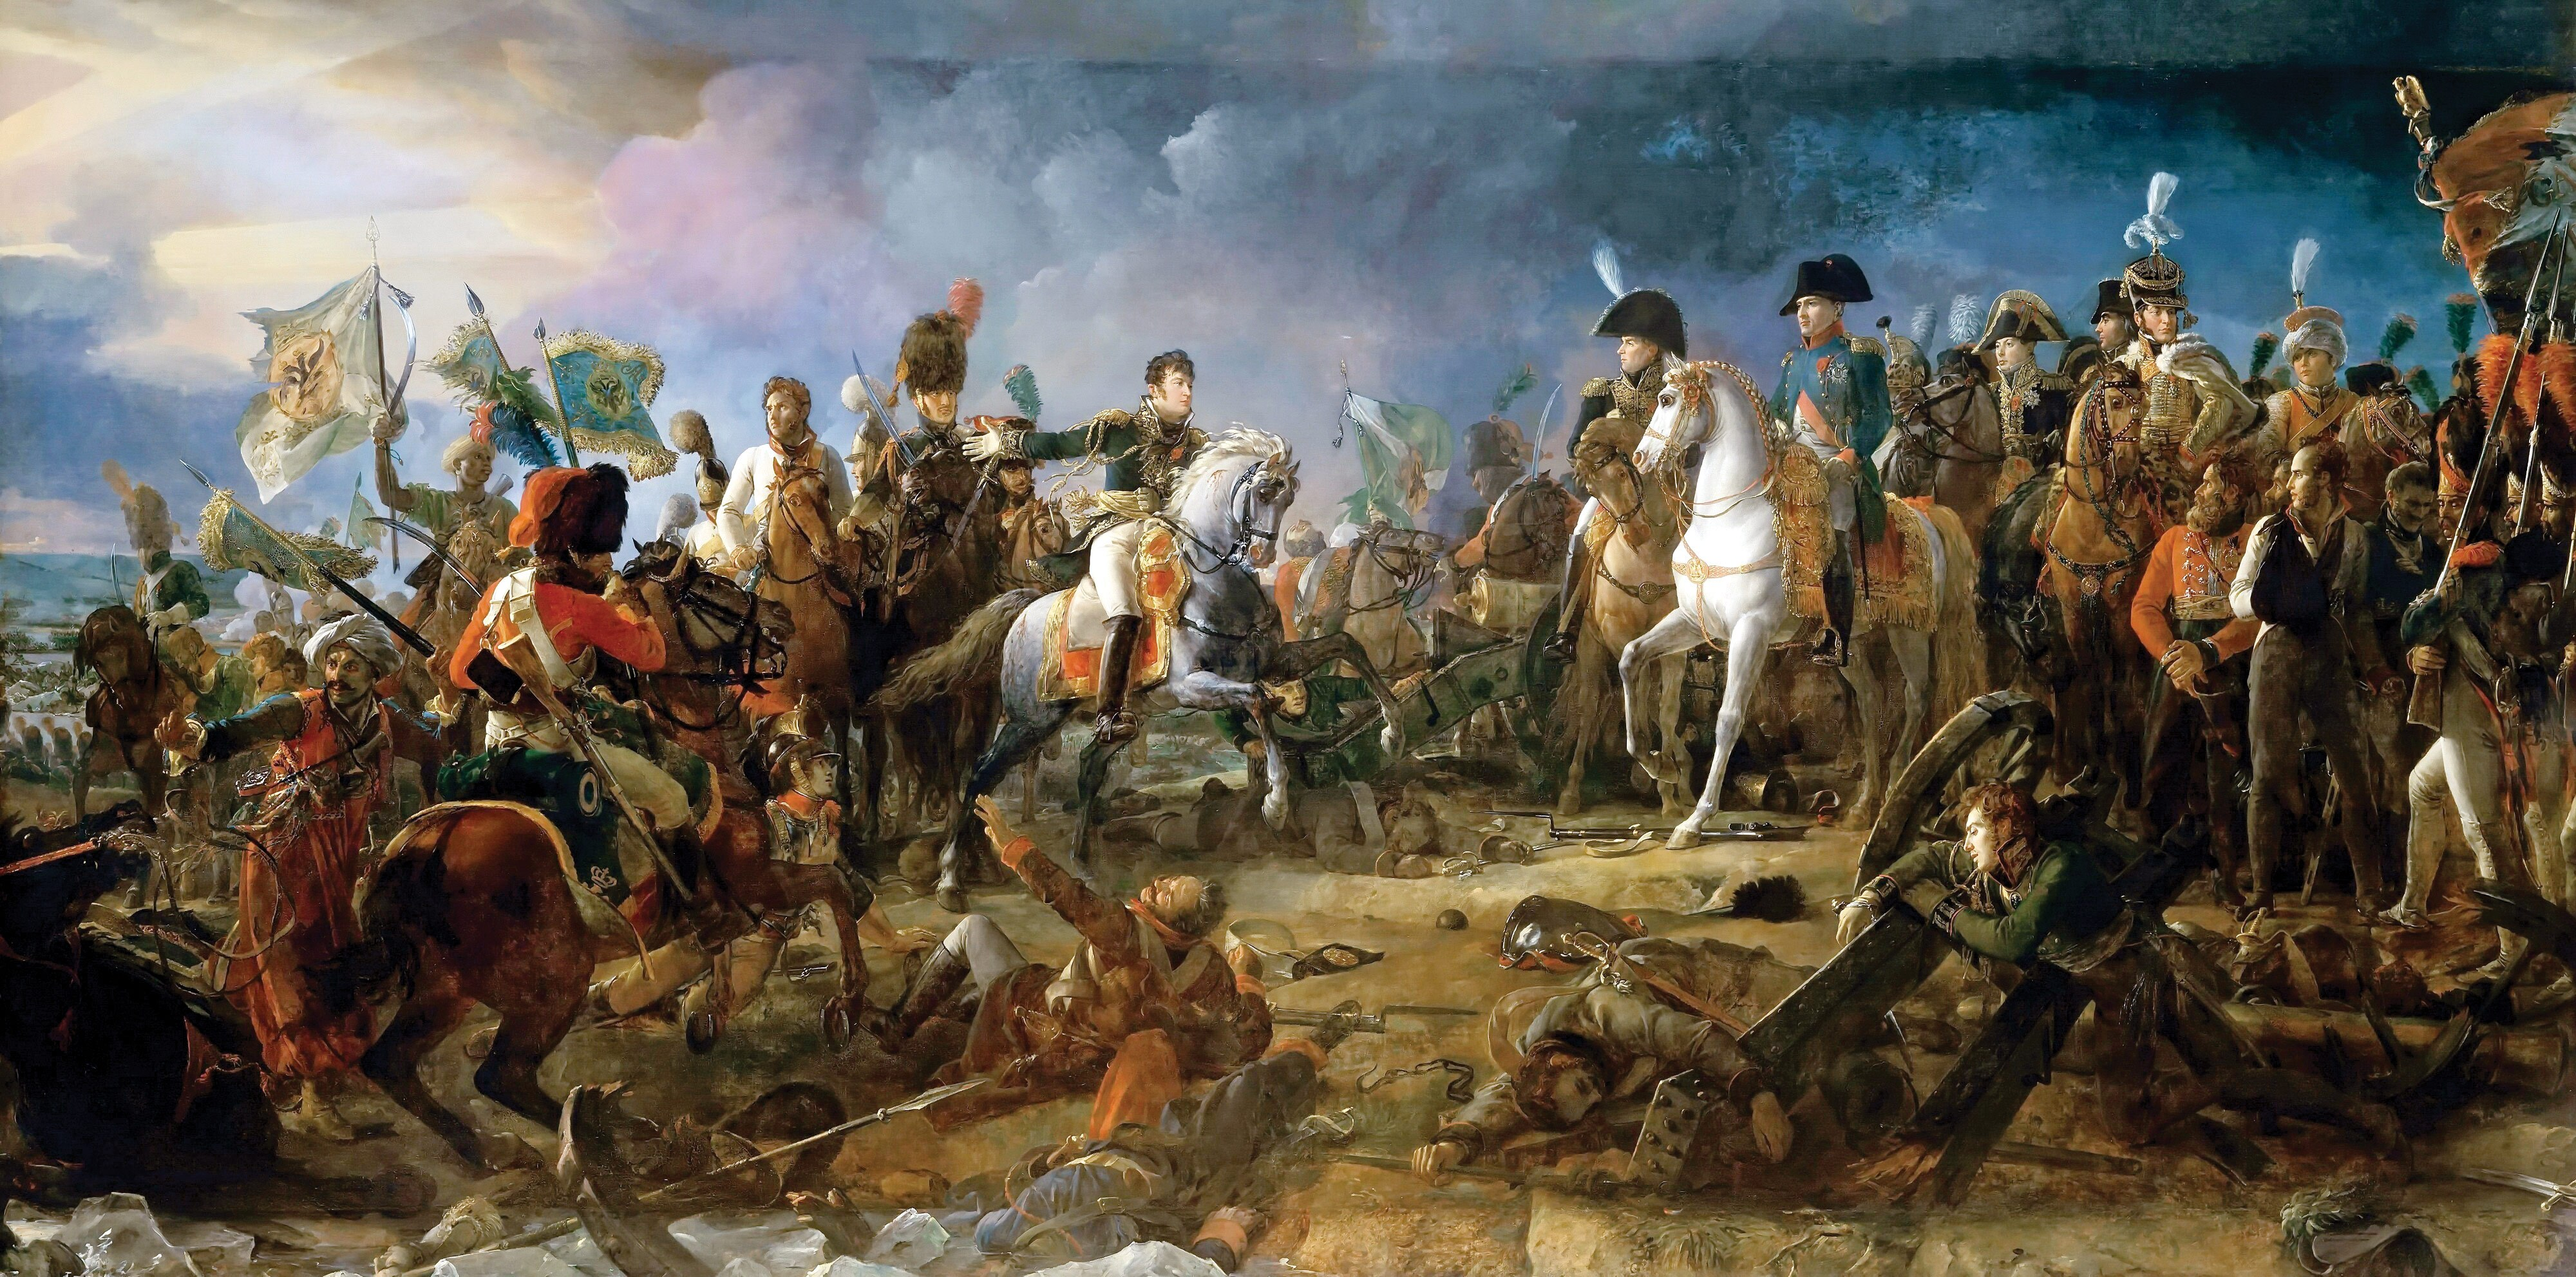 François Gérard's 1810 painting of Napoleon at the Battle of Austerlitz.